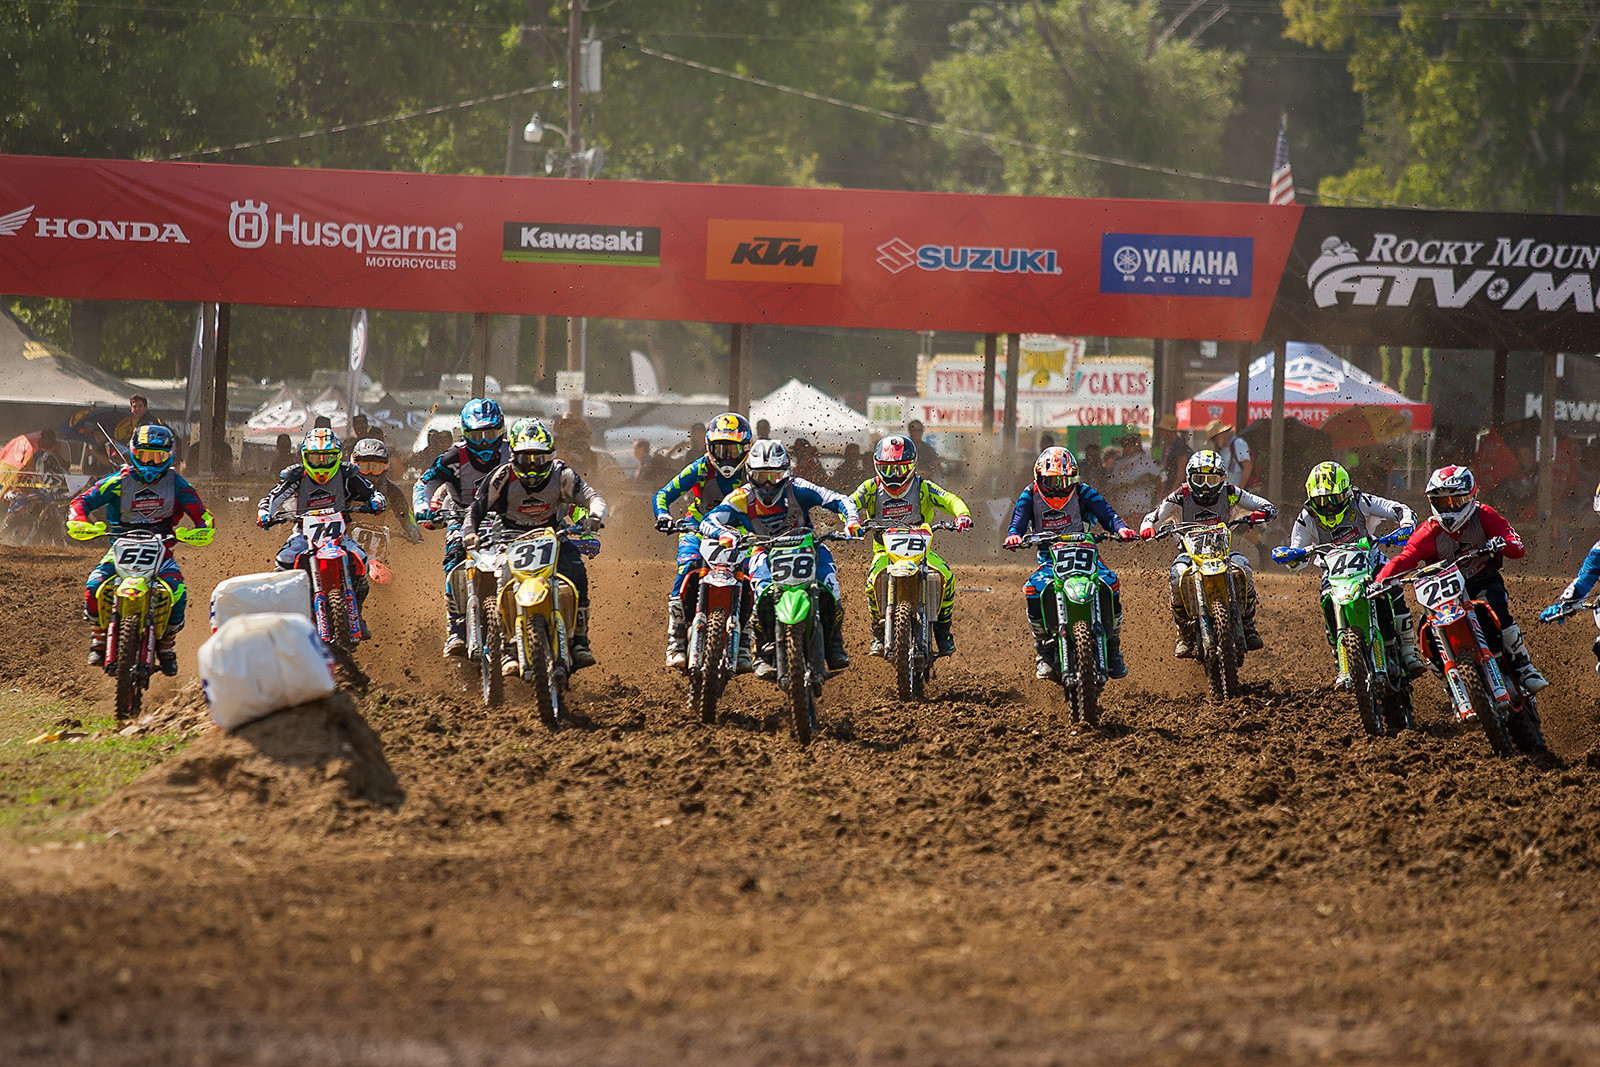 This is the 36th Annual Rocky Mountain ATV/MC AMA Amateur National Motocross Championship, which was established in 1982.